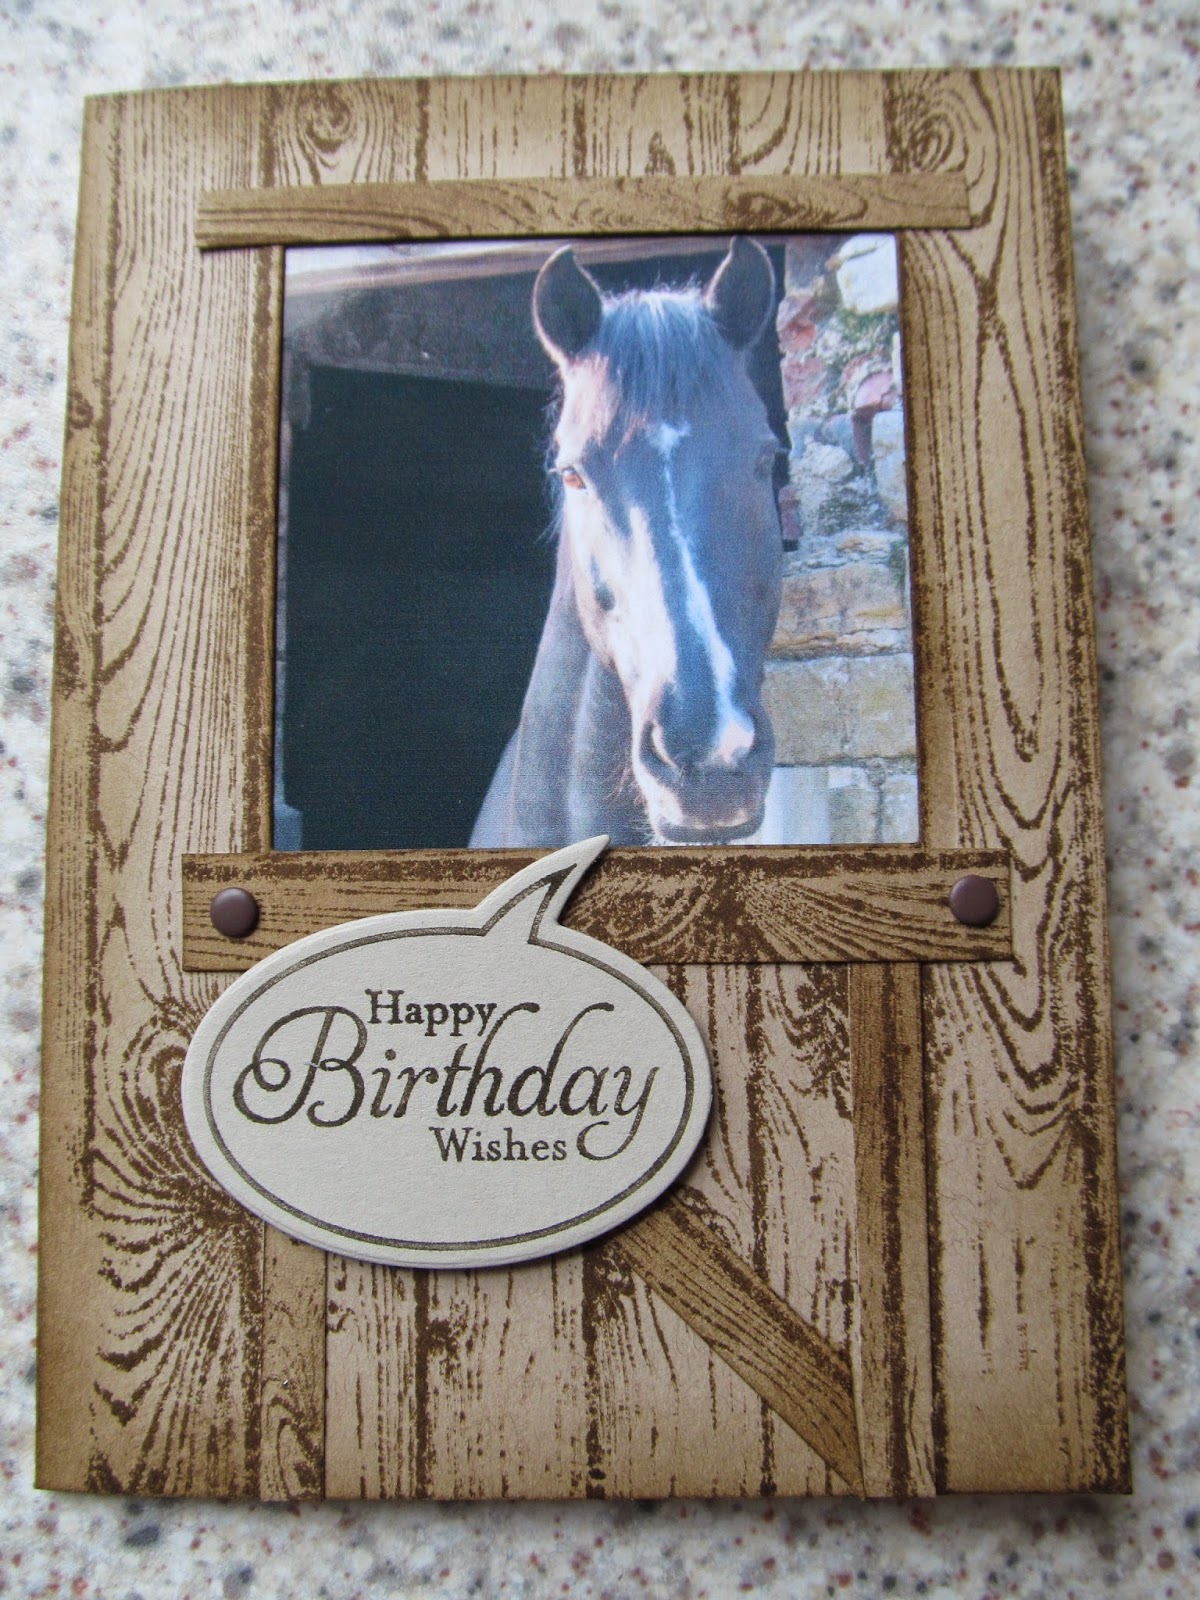 Jemini Crafts Personalised Card April 2014 www.jeminicrafts.co.uk